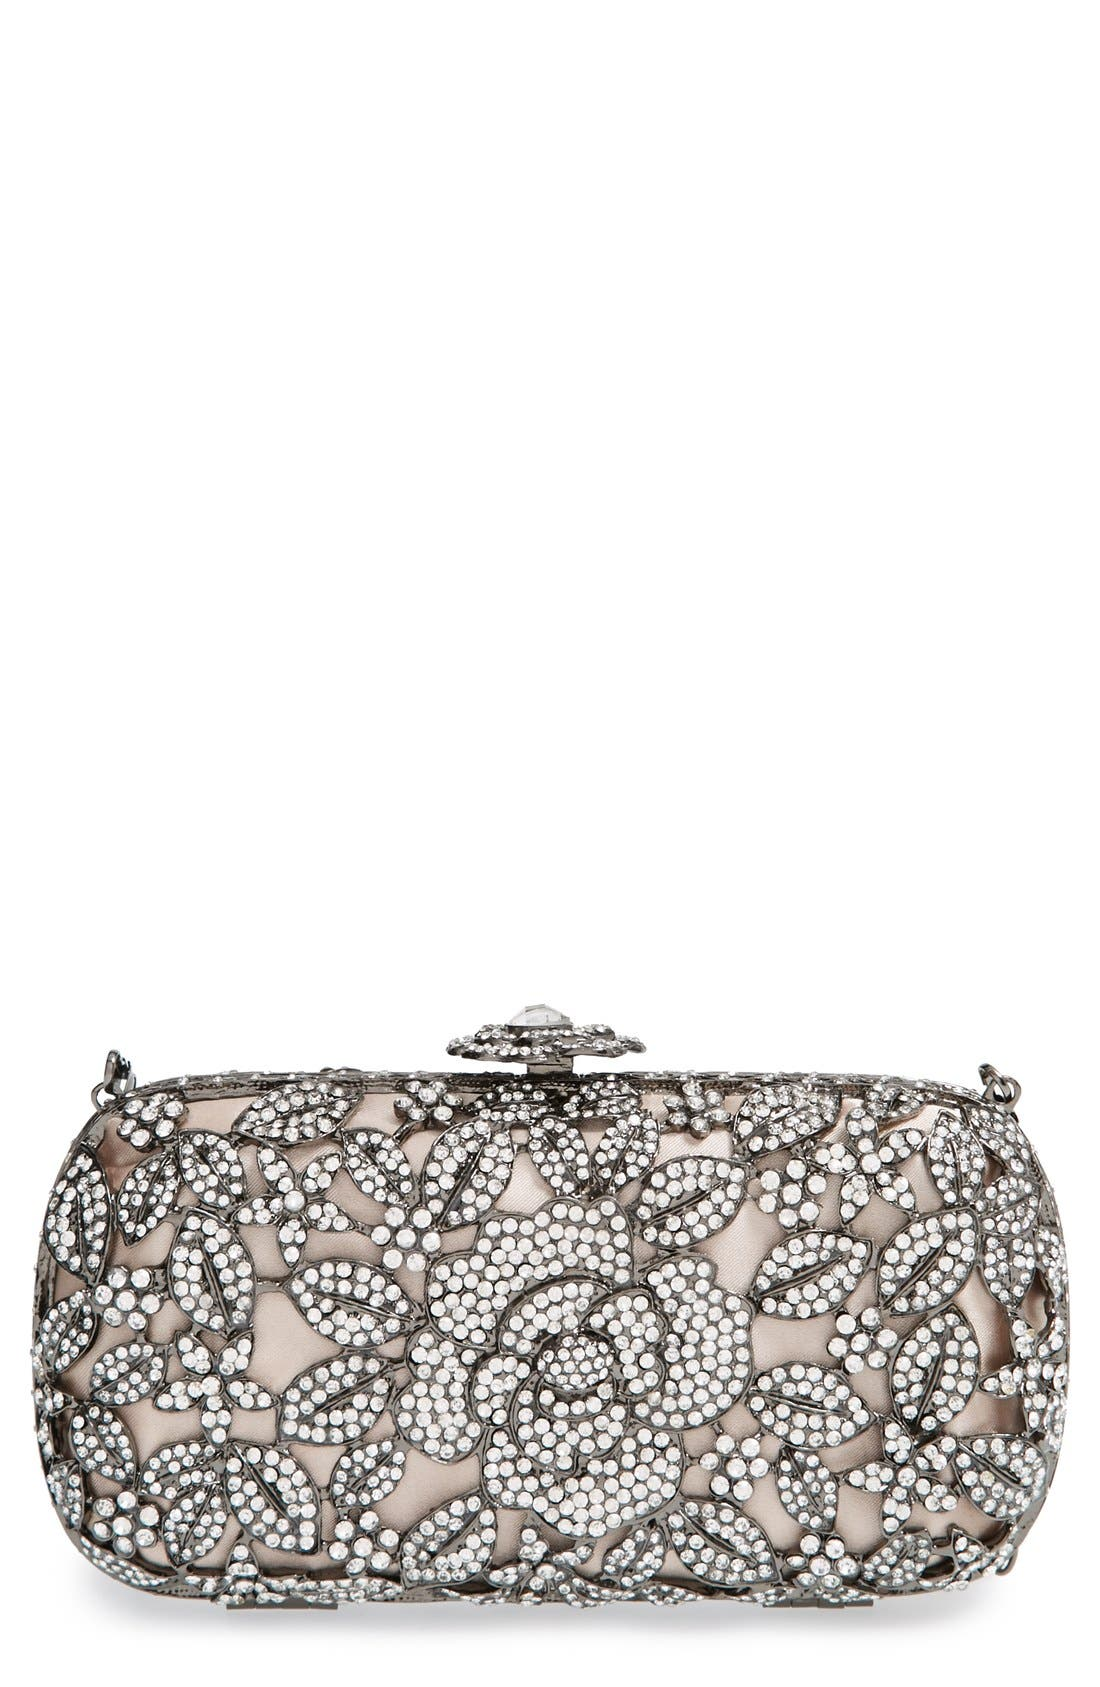 Alternate Image 1 Selected - Natasha Couture Crystal Caged Floral Clutch